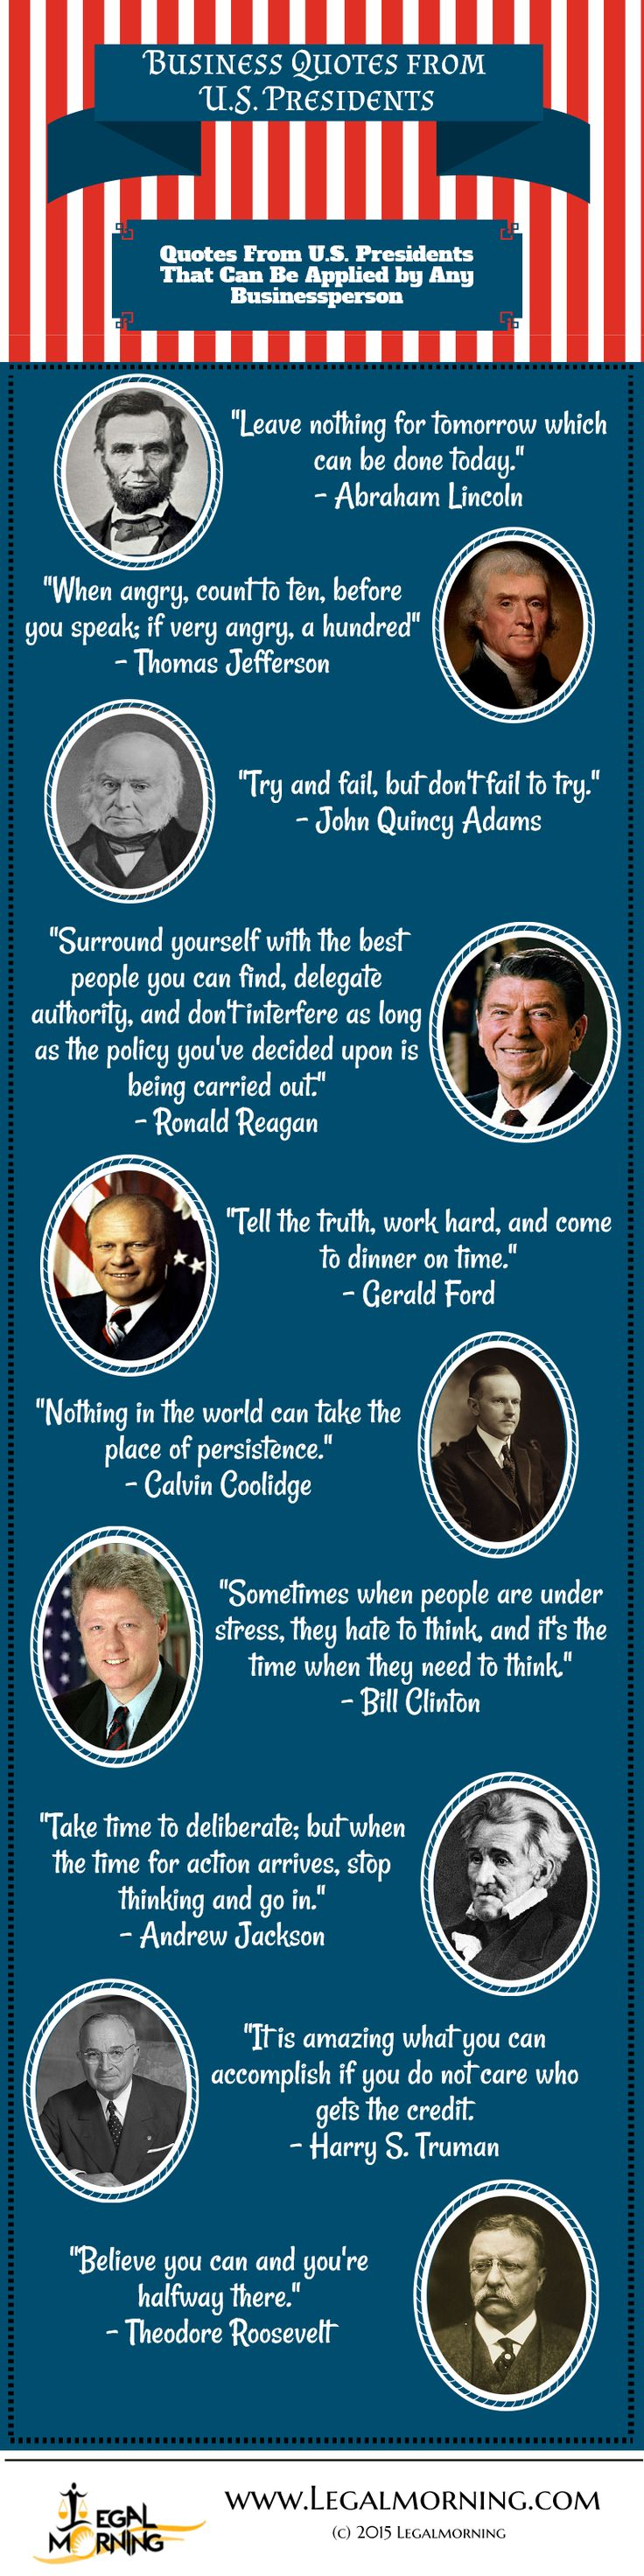 Business quotes from united states presidents infographic